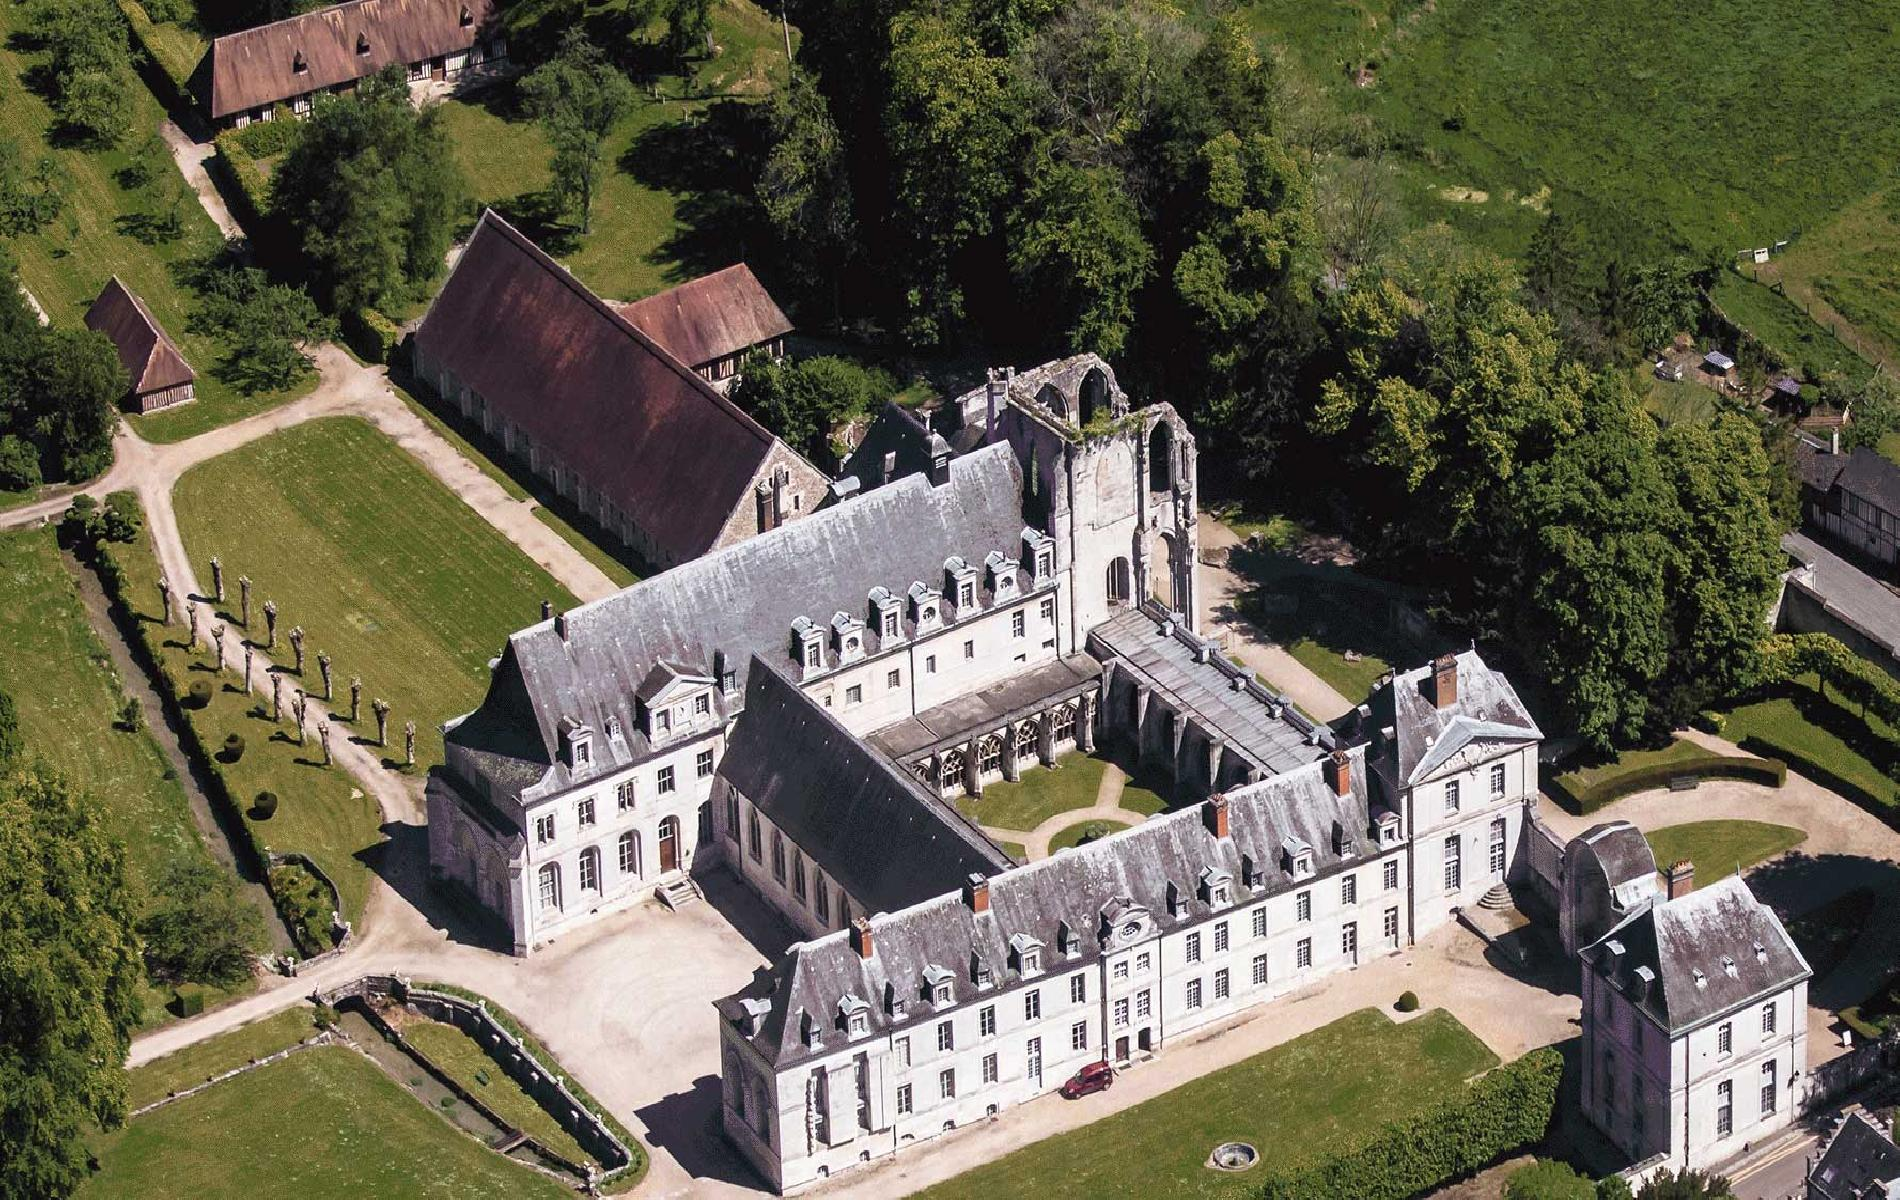 The Abbey of Saint-Wandrille